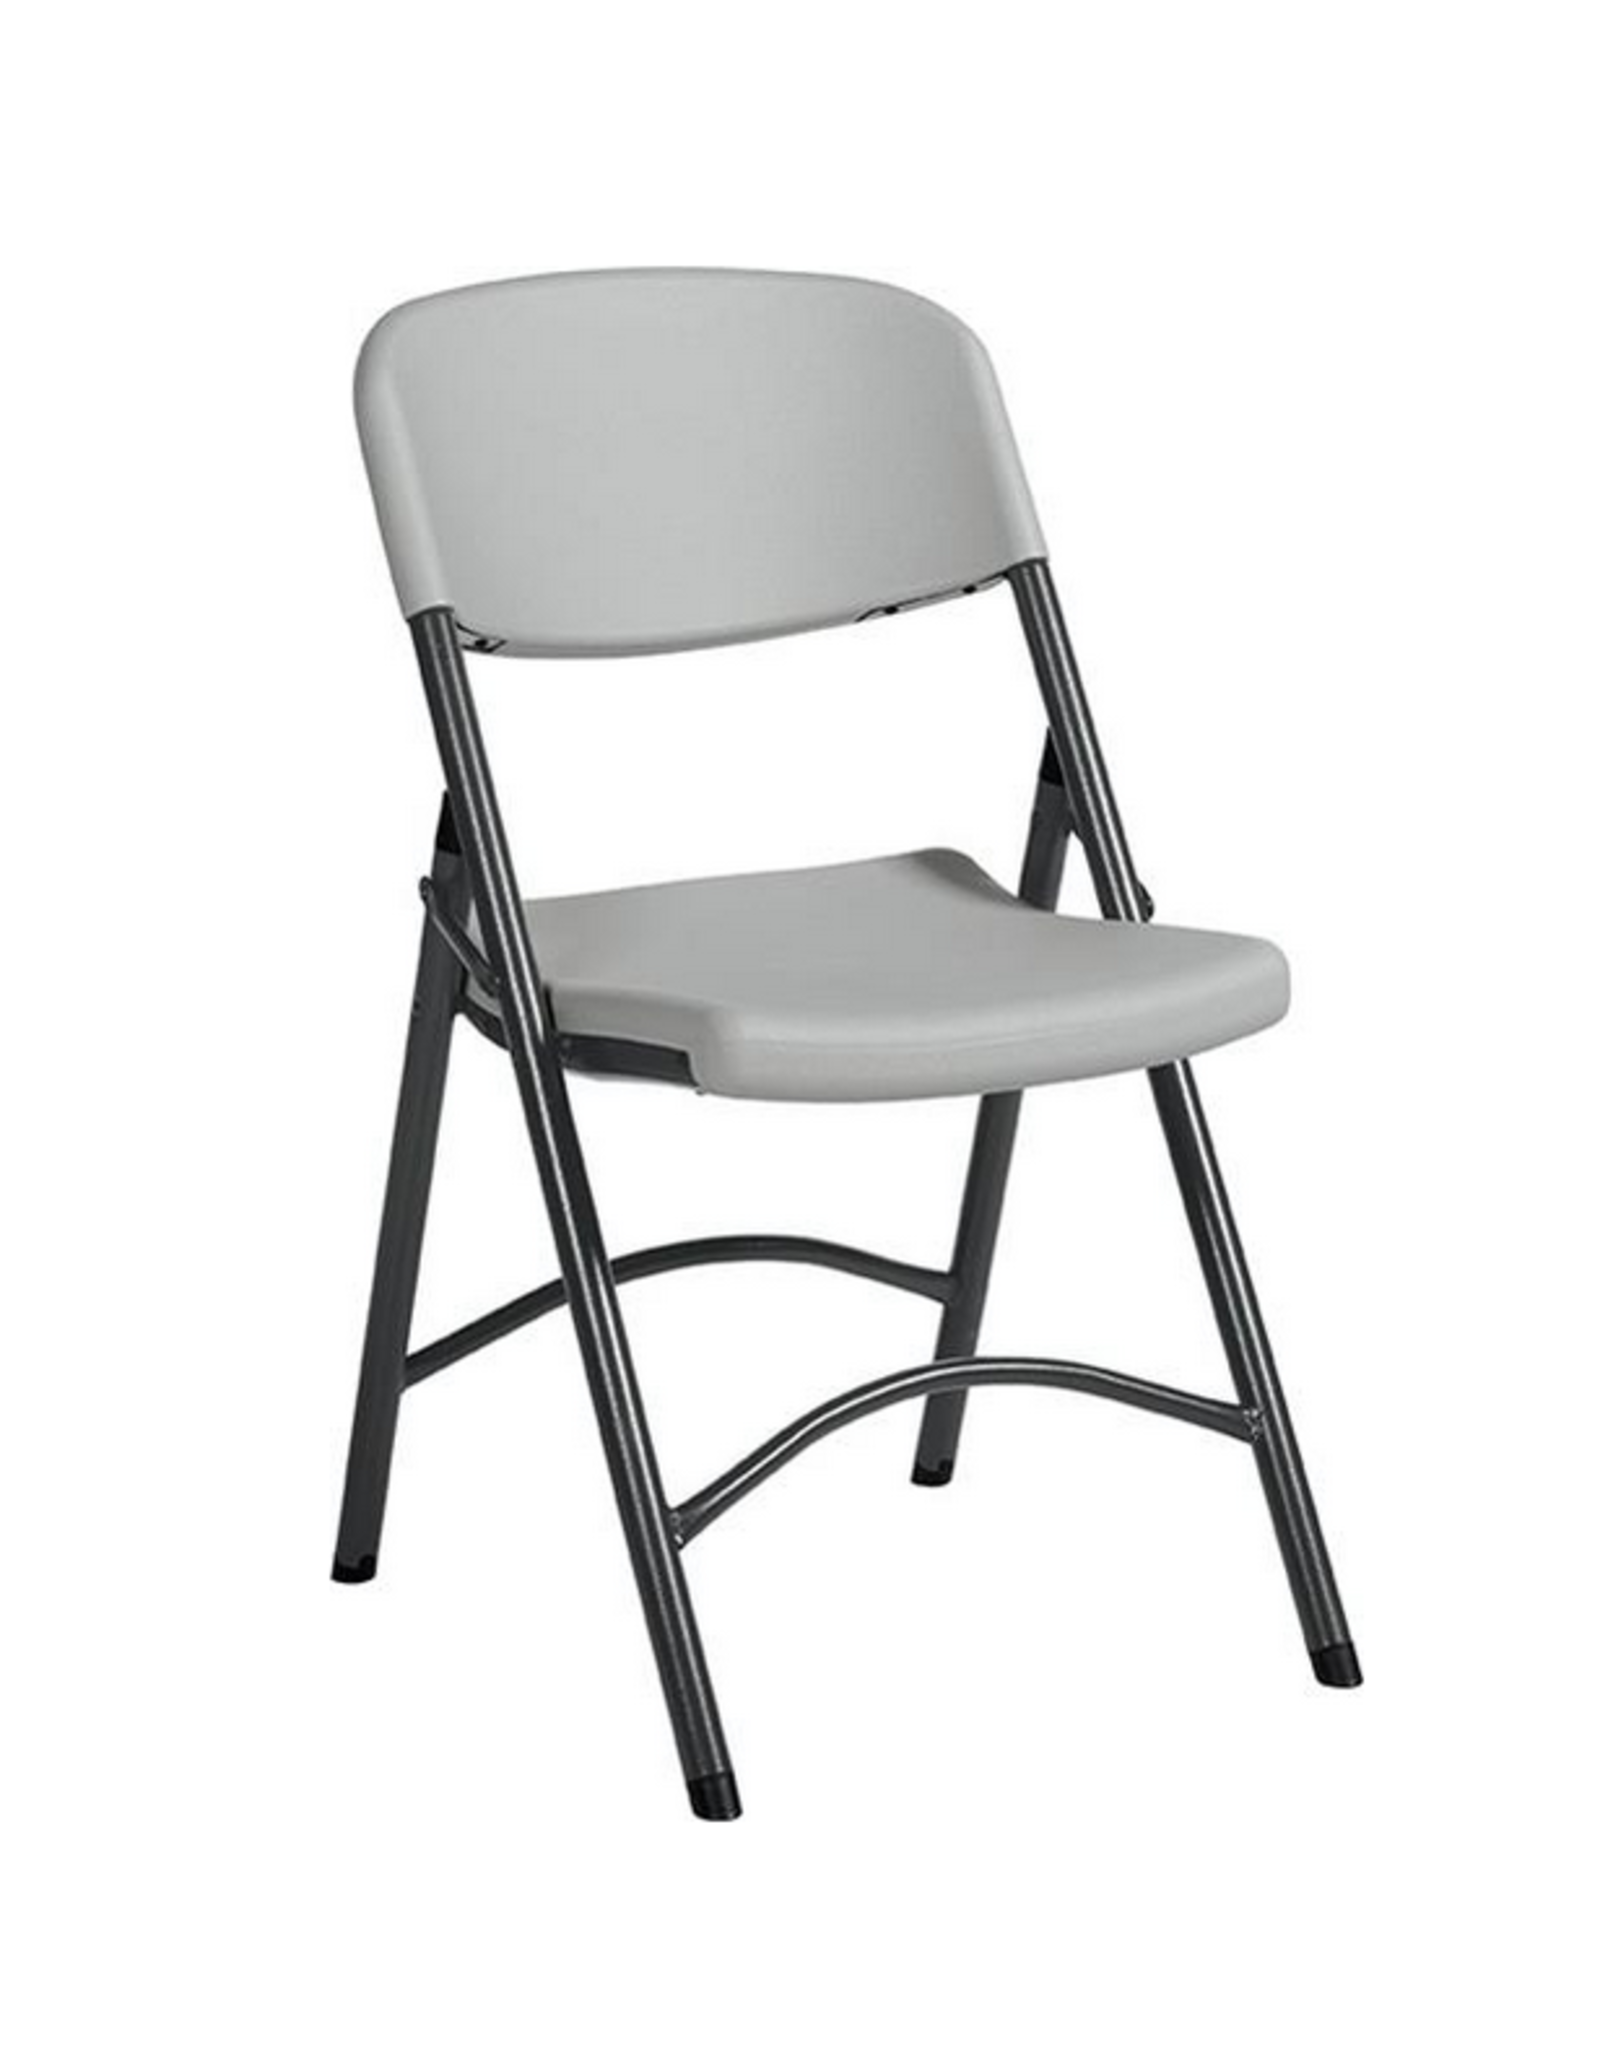 GLOBAL OFFICE Chair - Offices To Go - Folding & Stacking Chair - Plastic, White